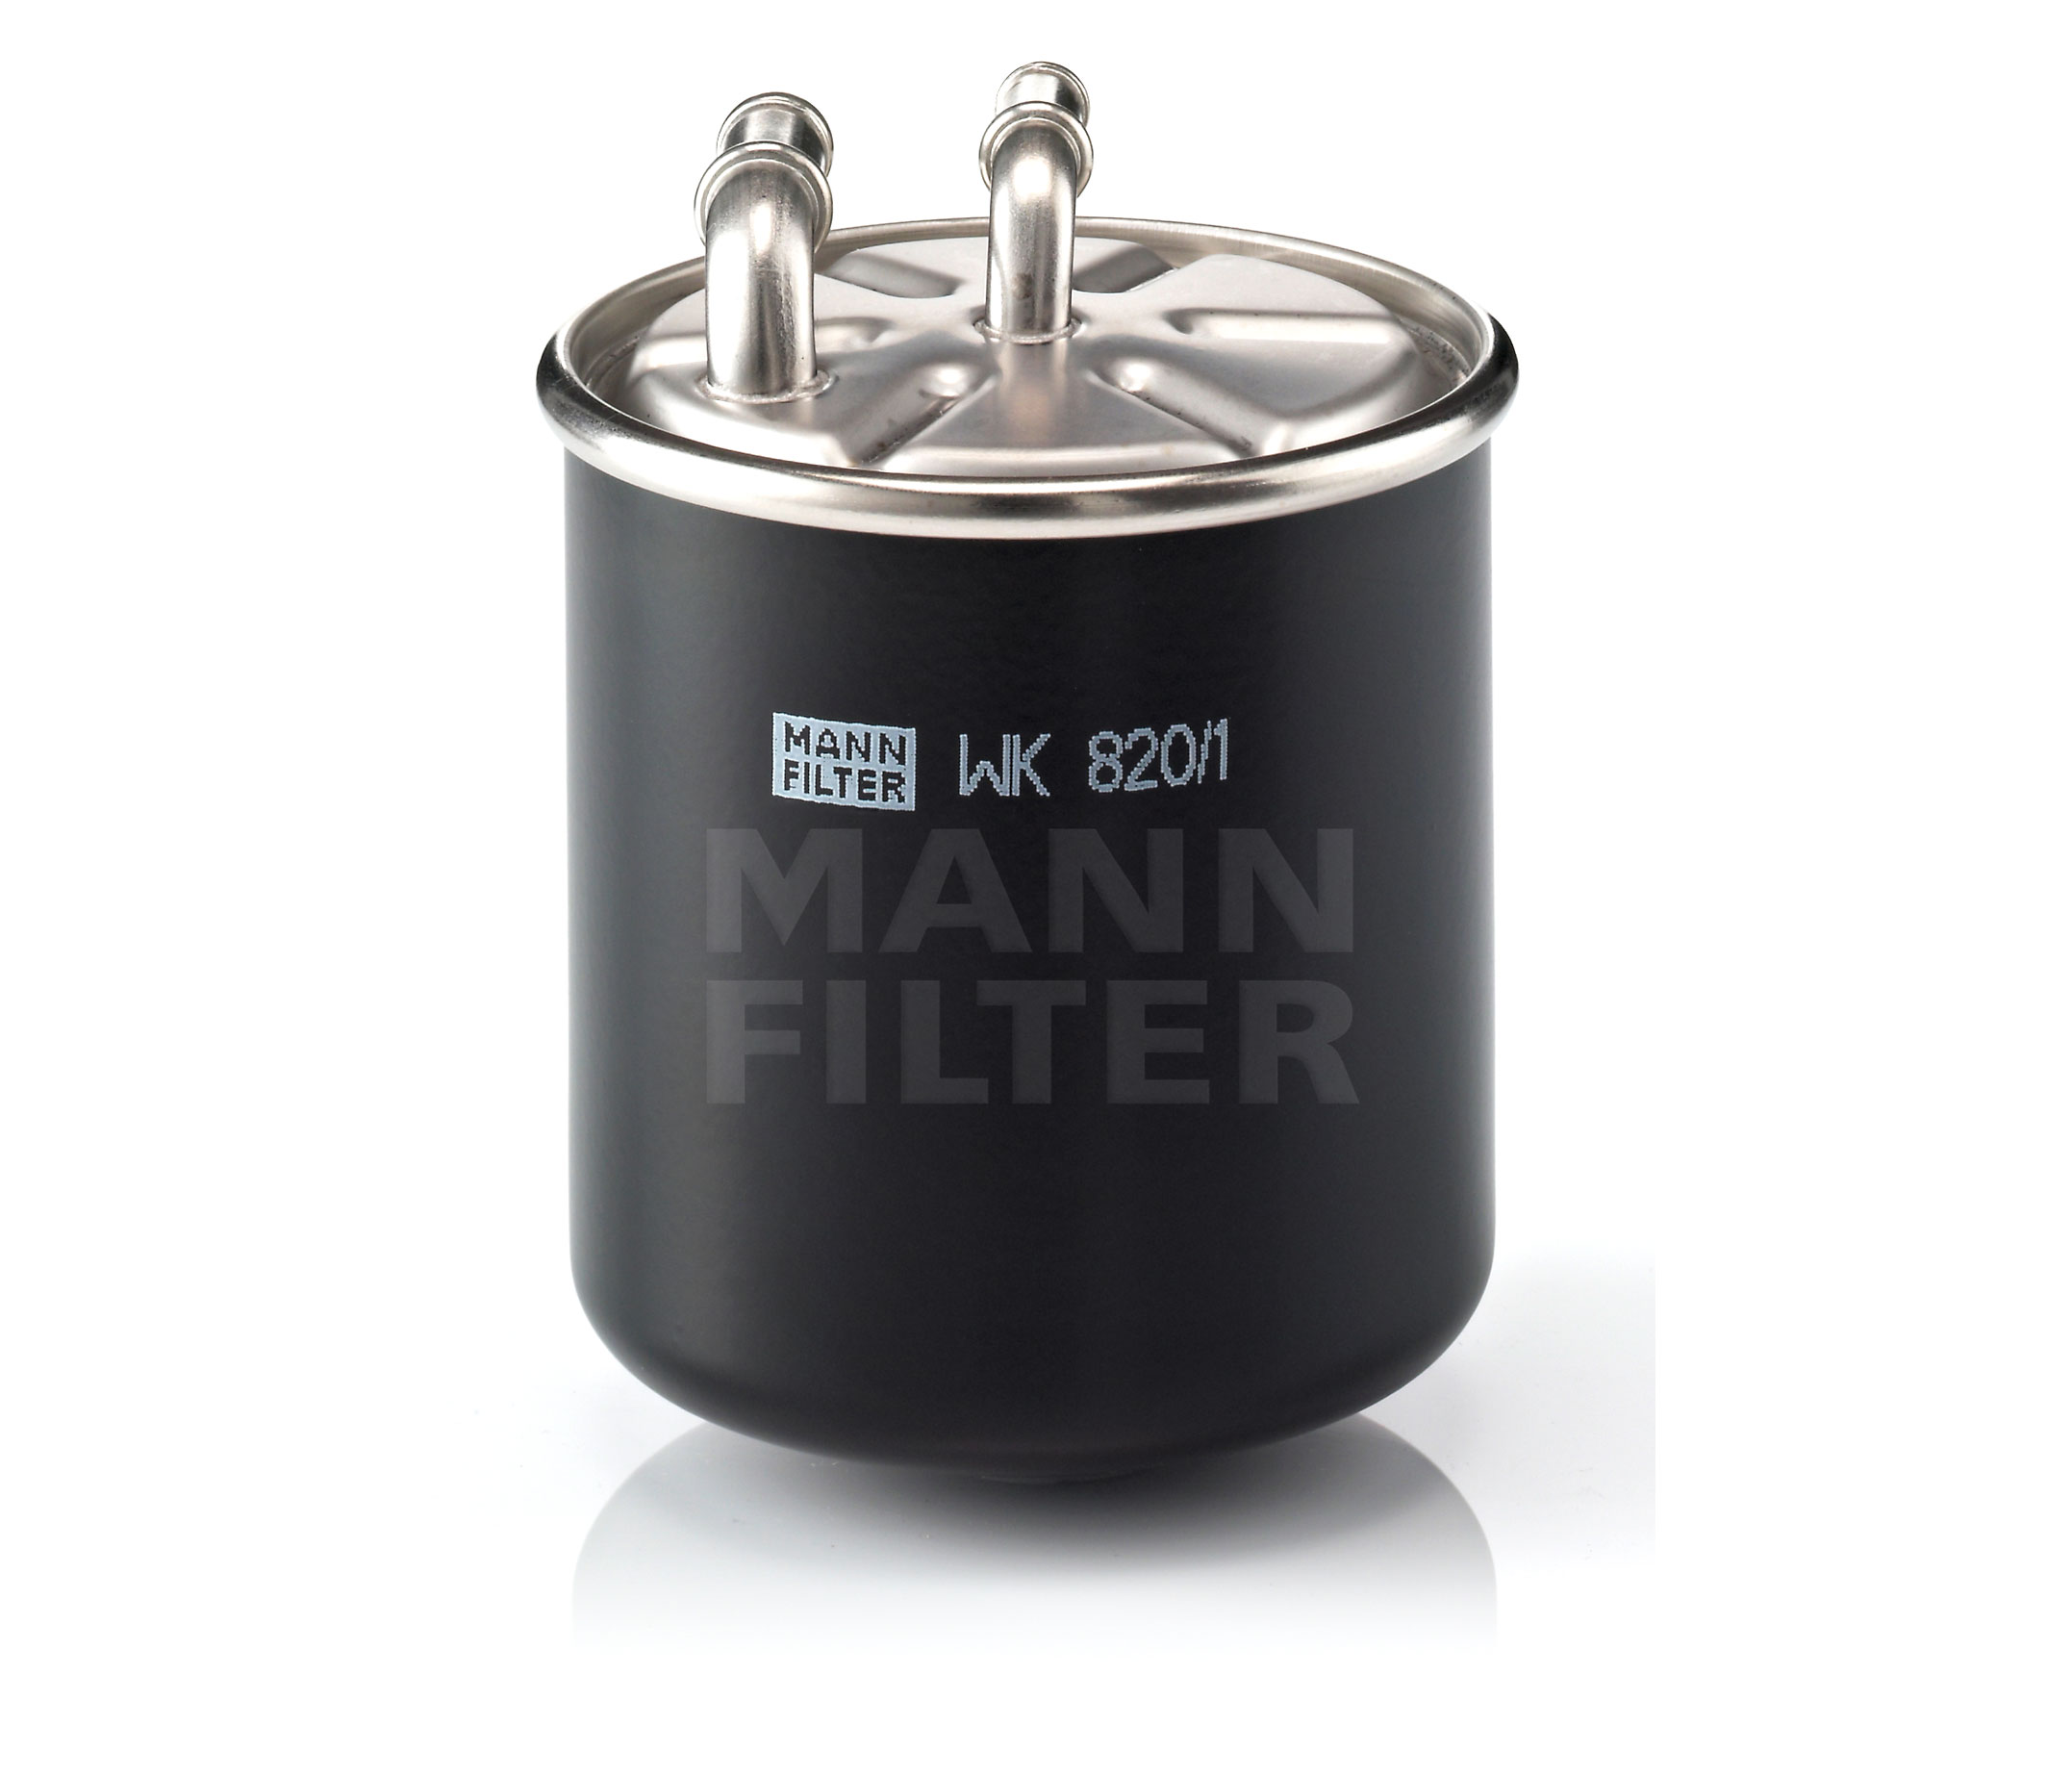 Mann Fuel Filter Wk820 1 Fits Mercedes Benz Sprinter 309 Cdi 906 Freightliner Wrench 311